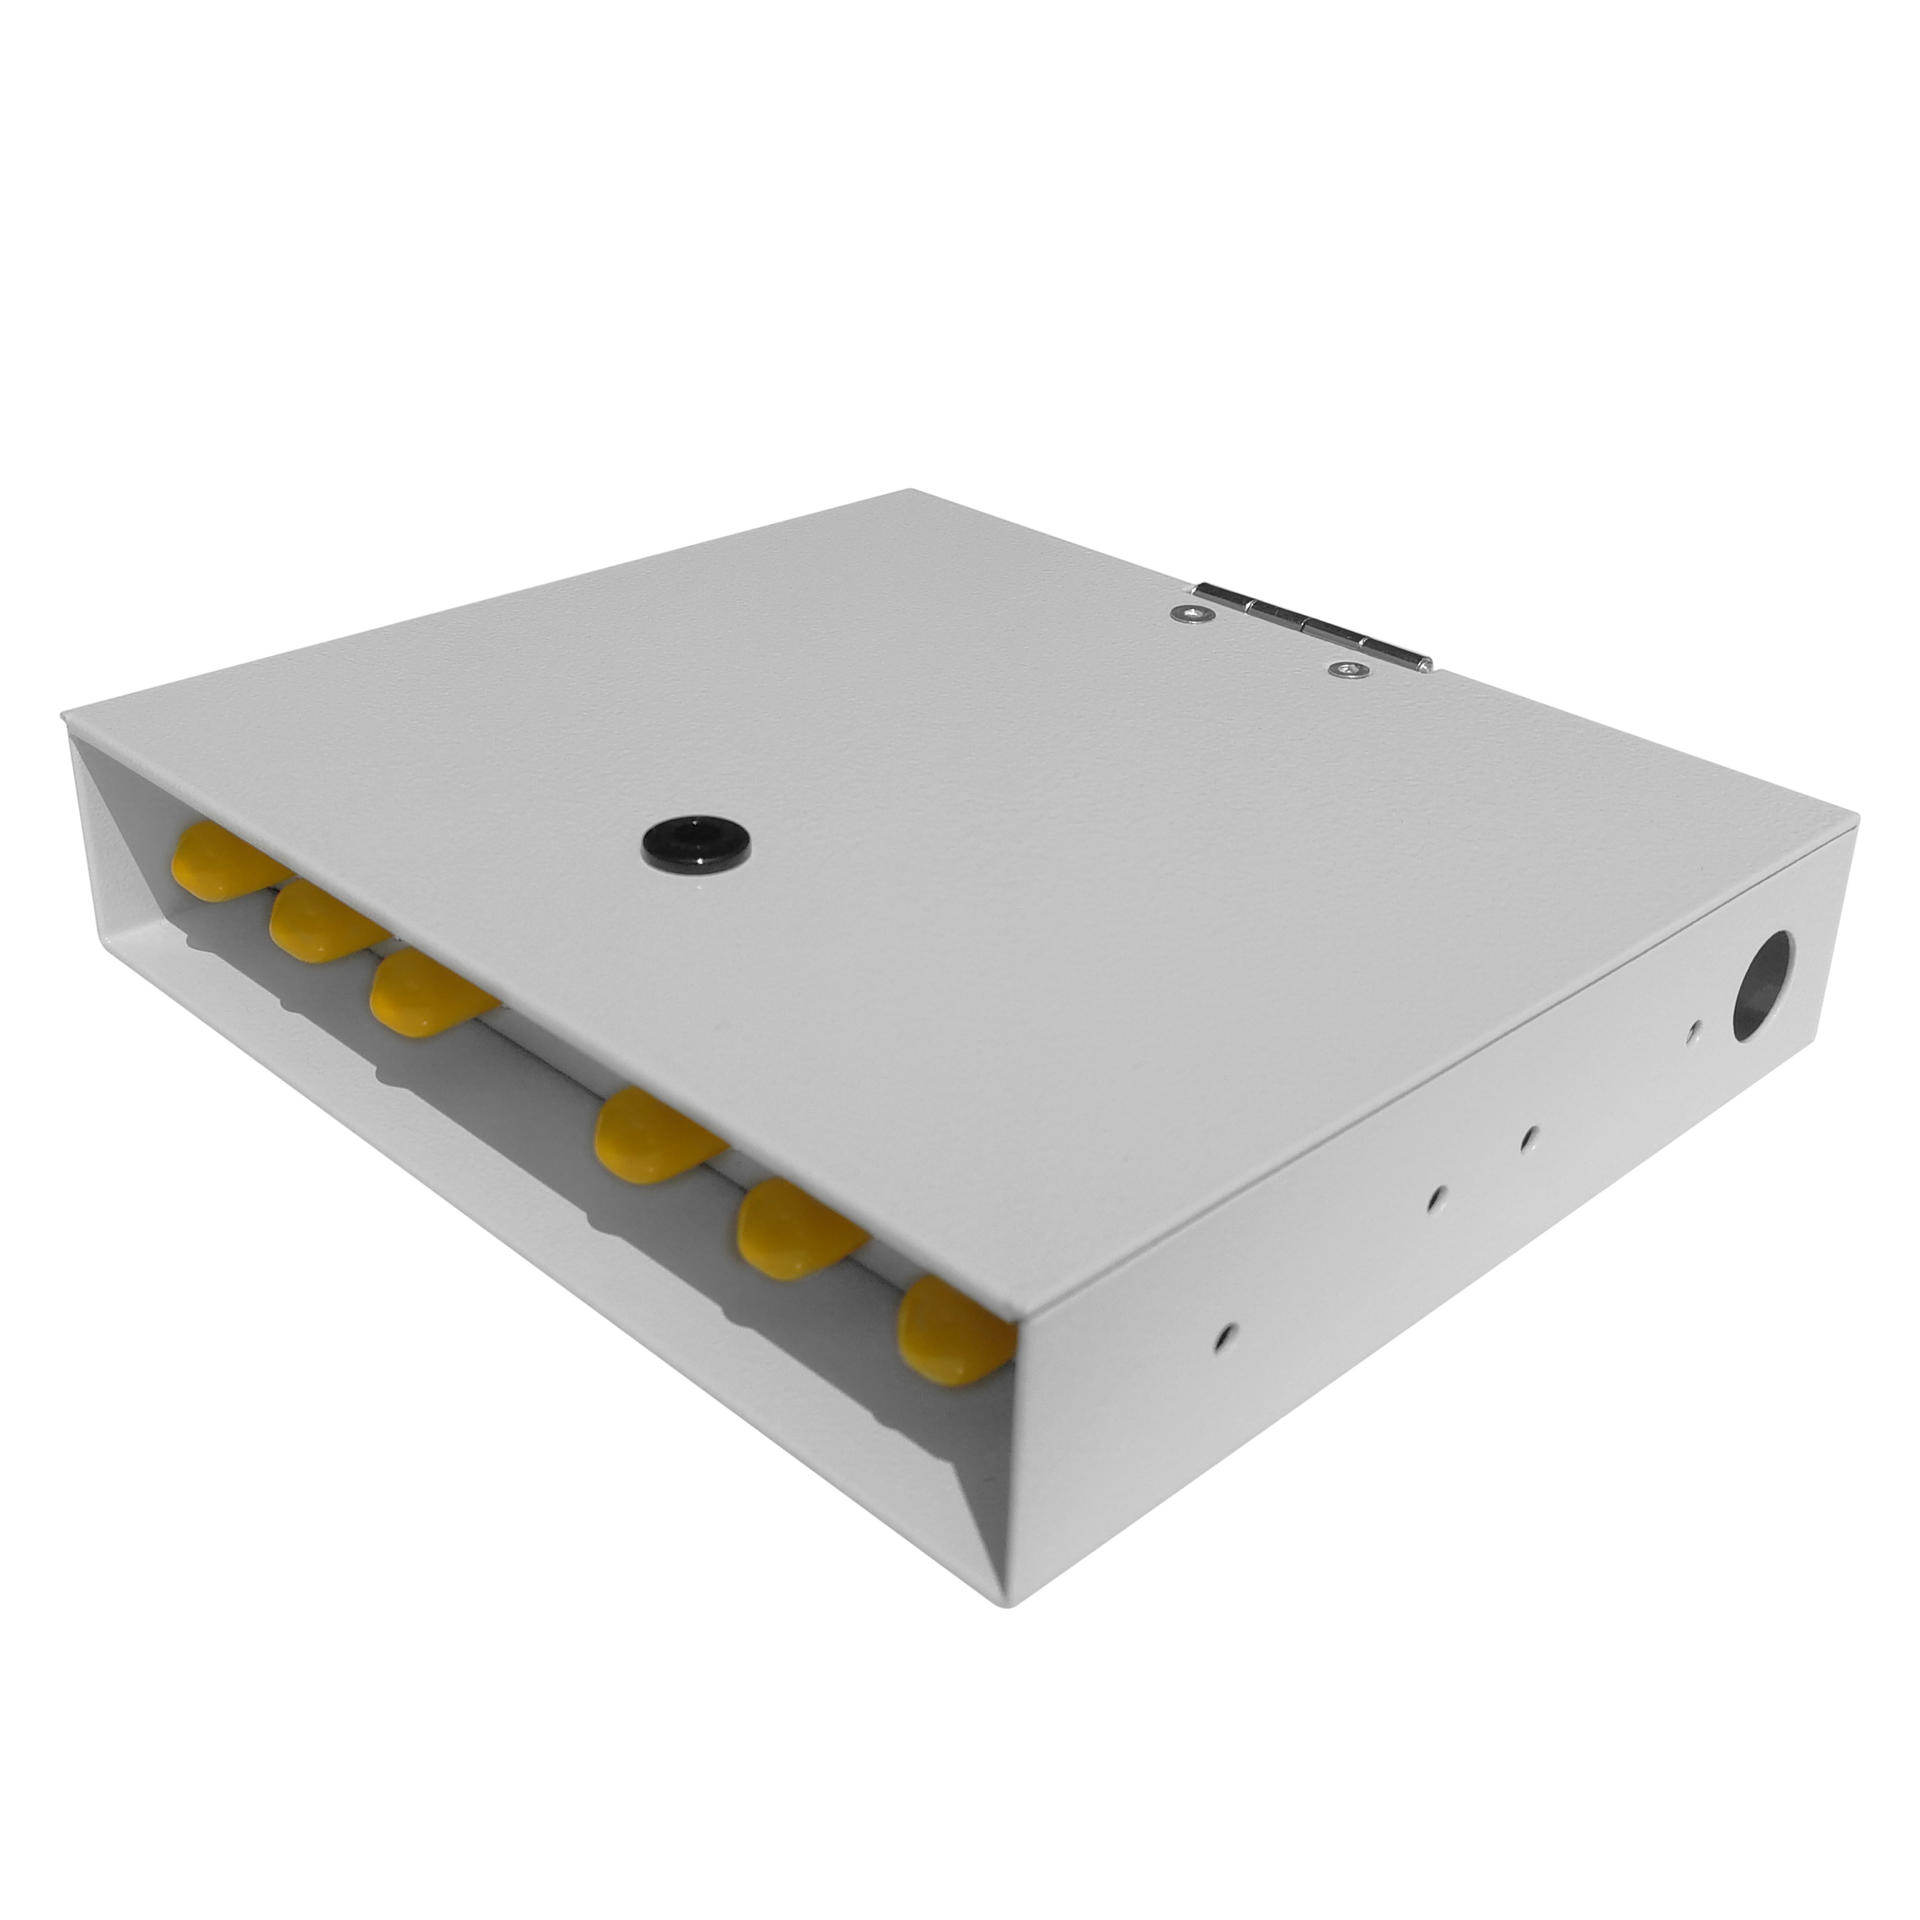 6 Port WODF Fiber Optic Distribution Box, ST Simplex